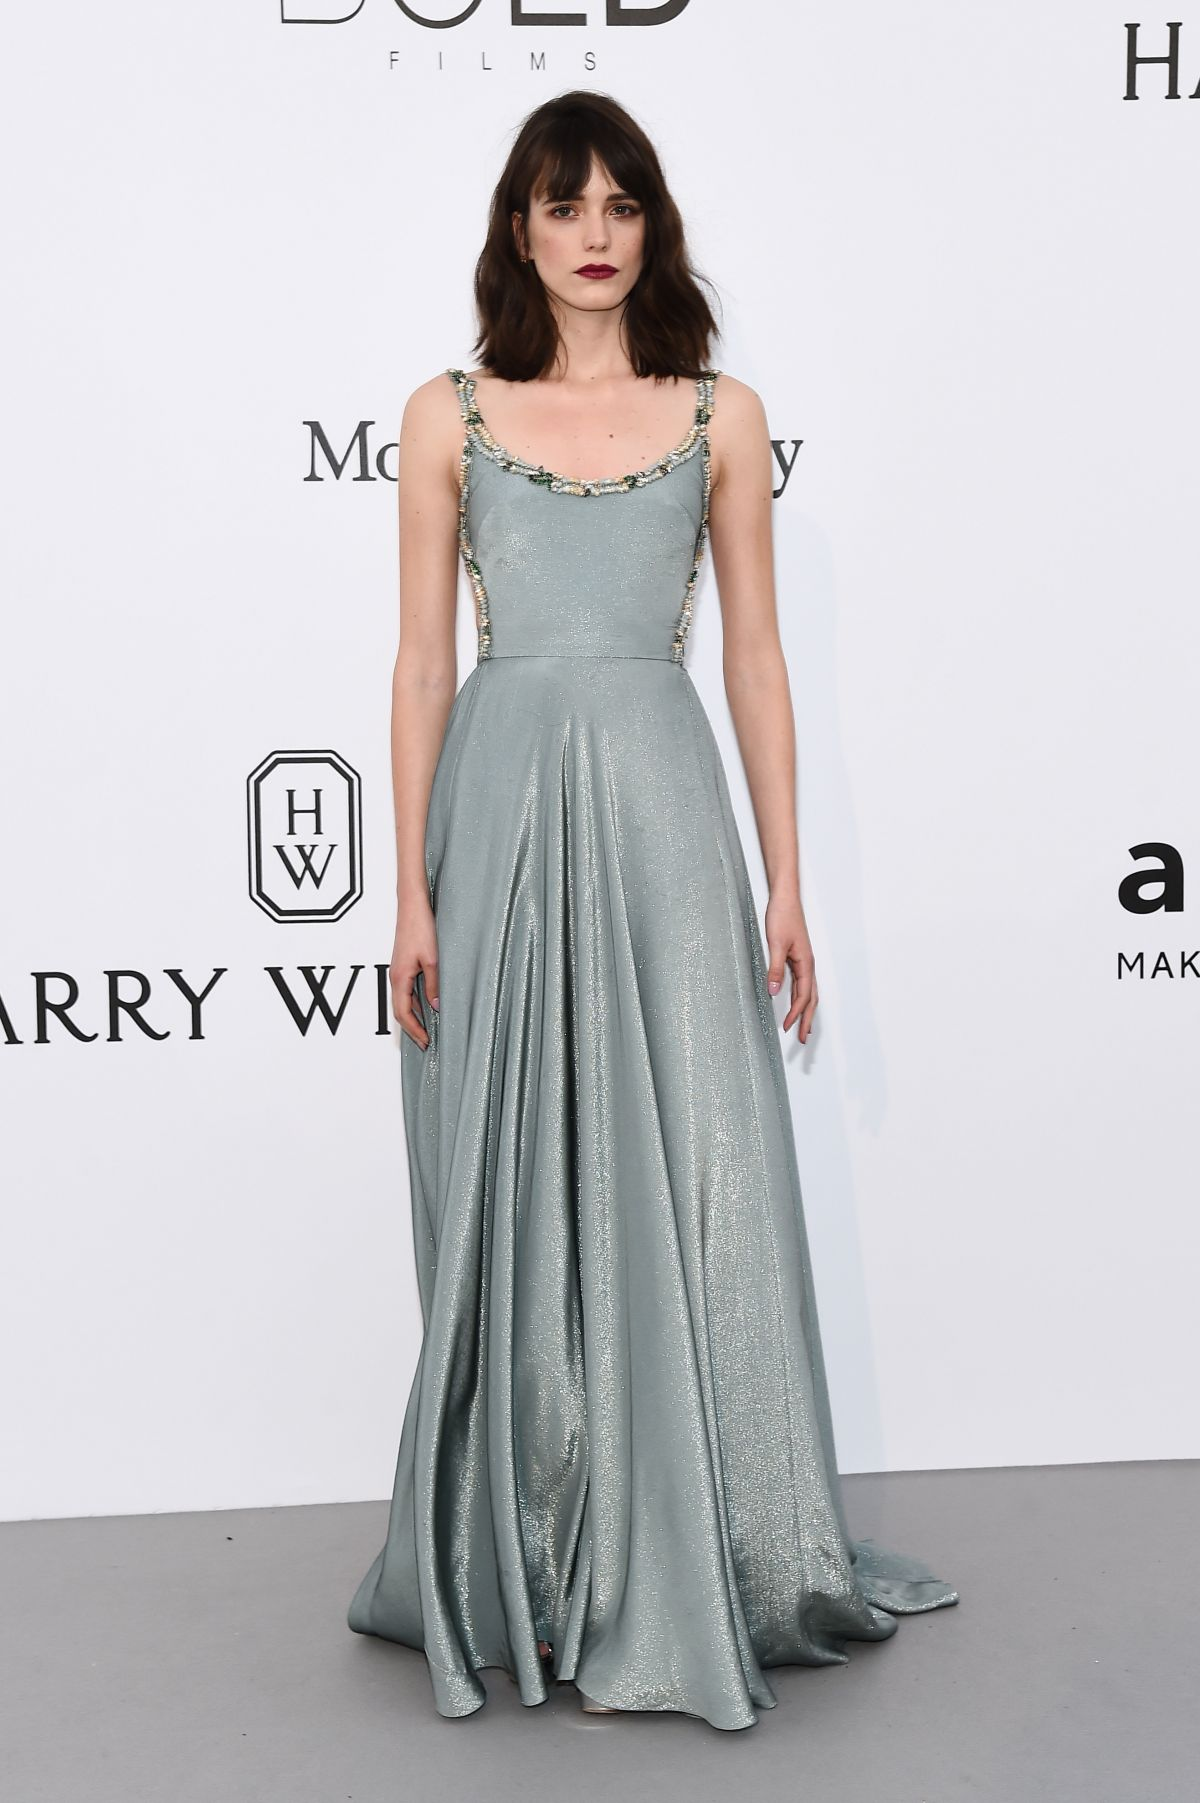 STACY MARTIN at Amfar